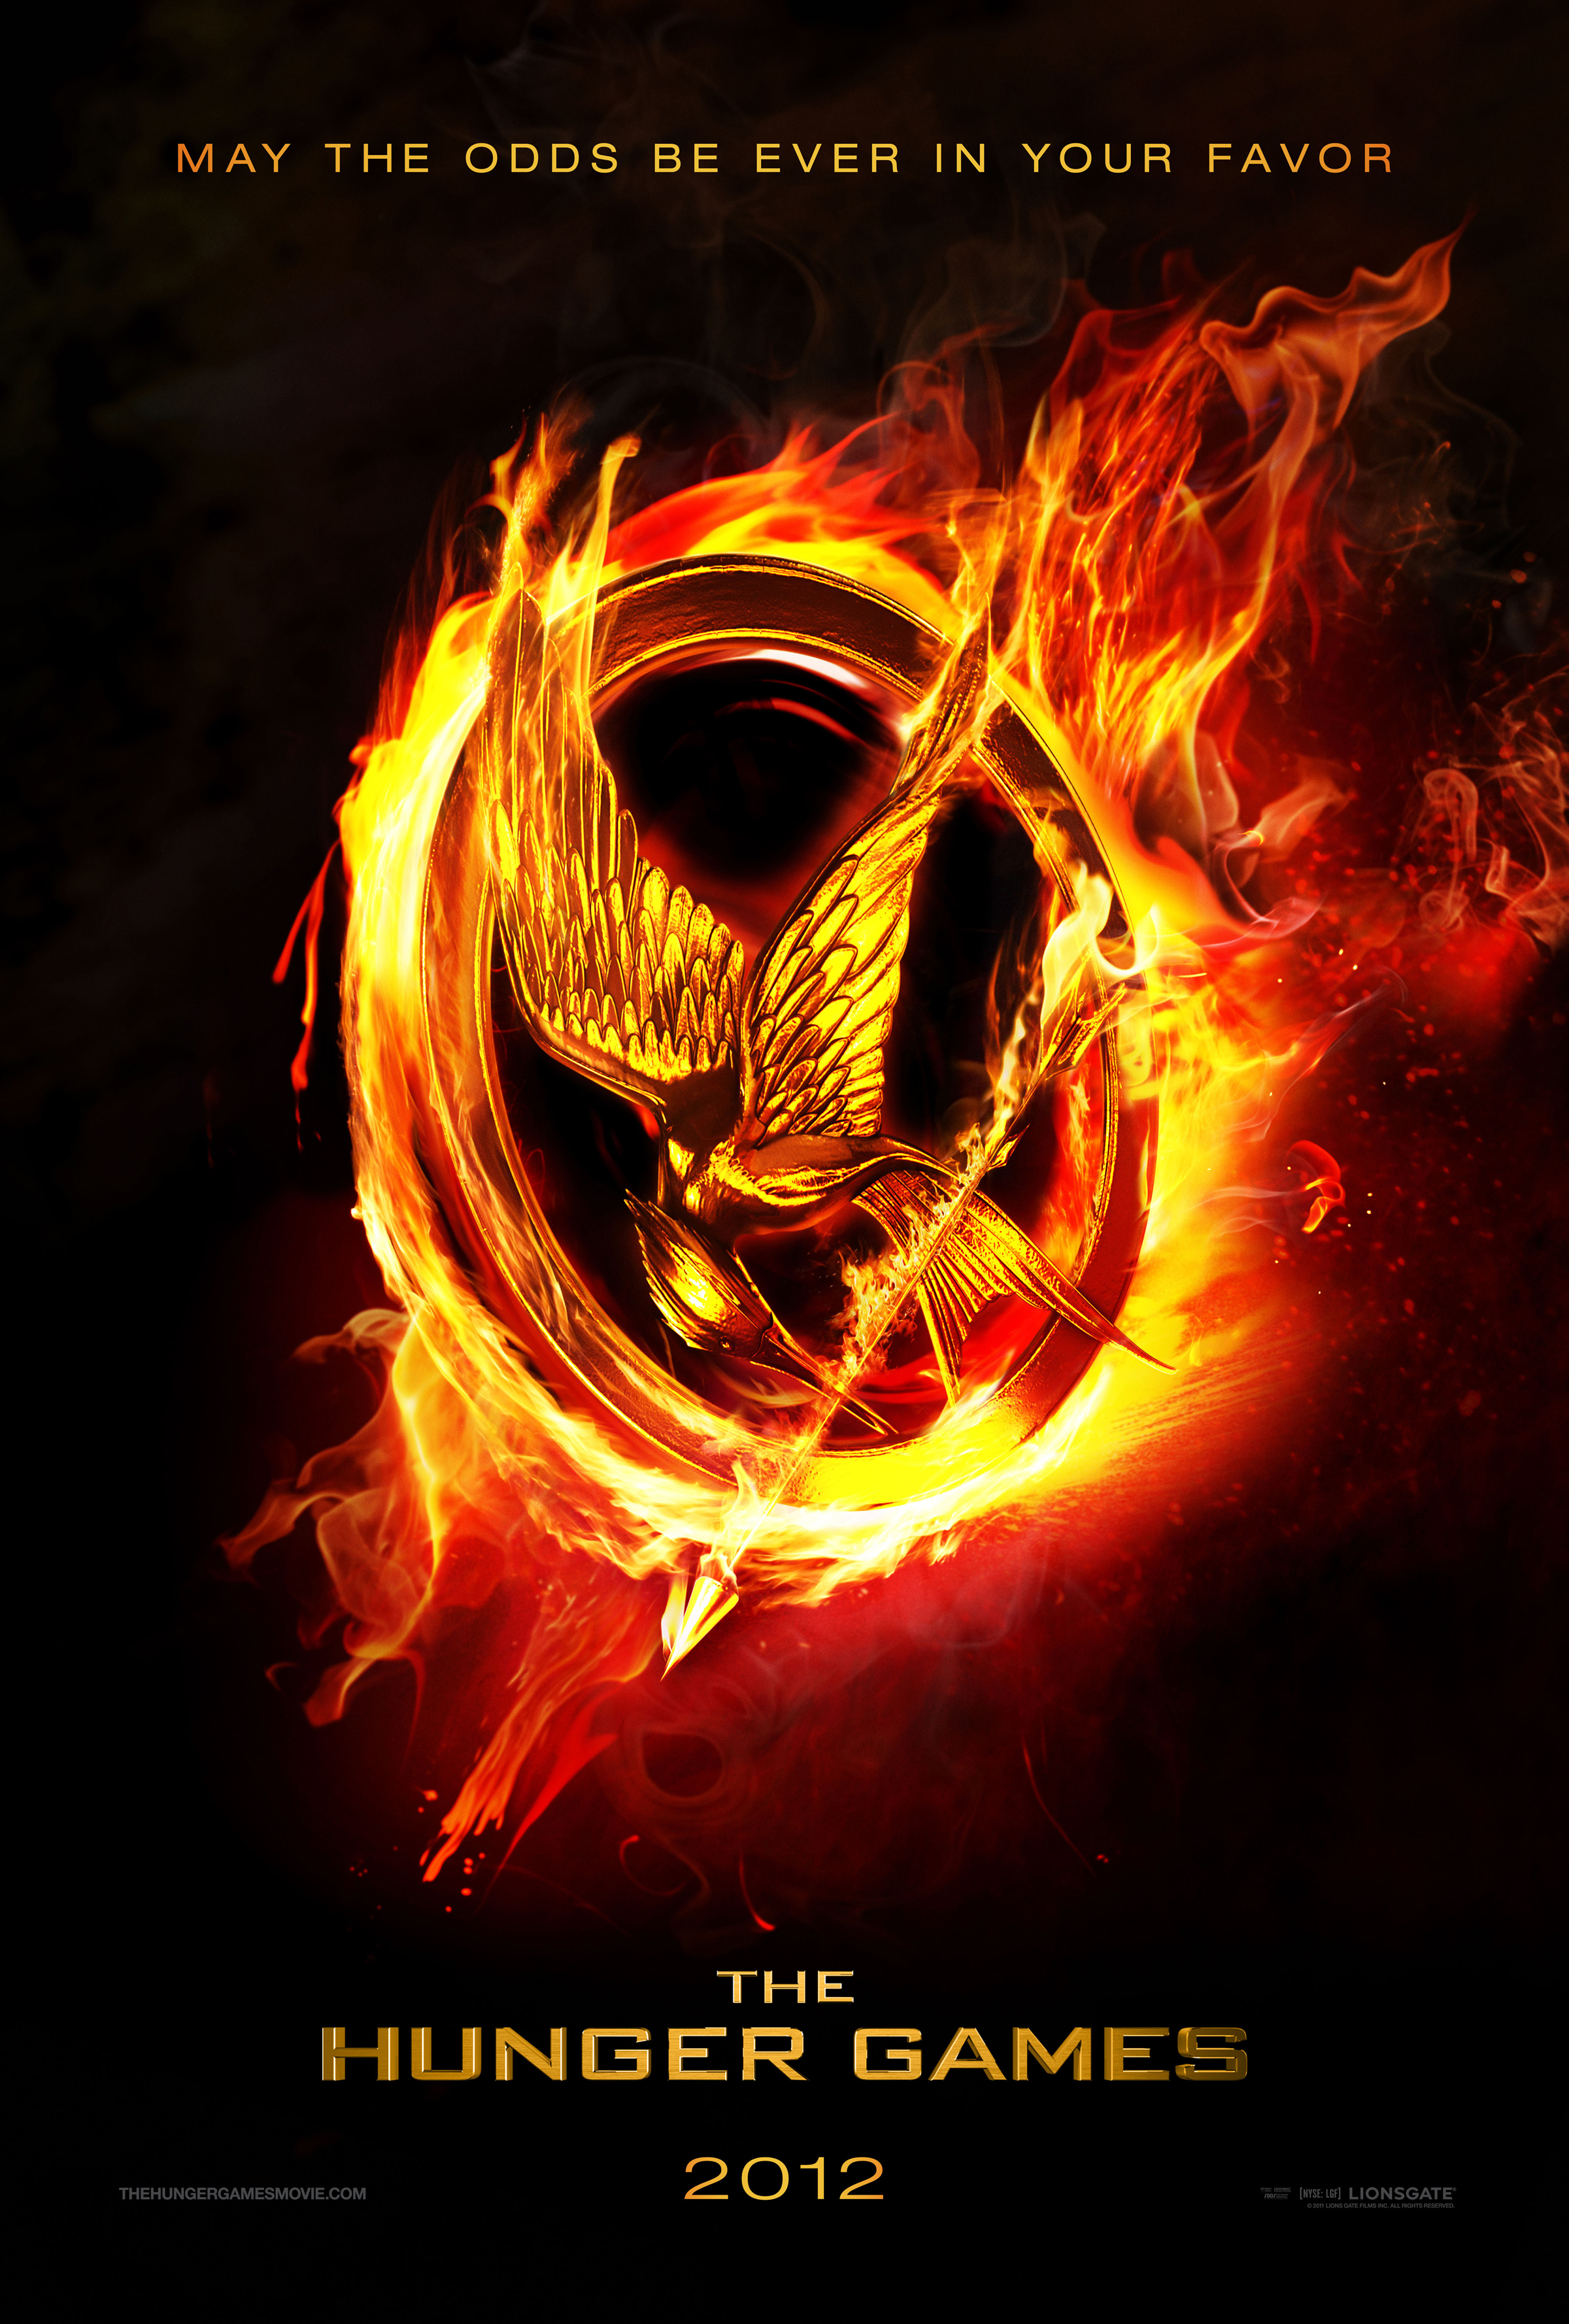 case study the hunger games zach s com100 blog